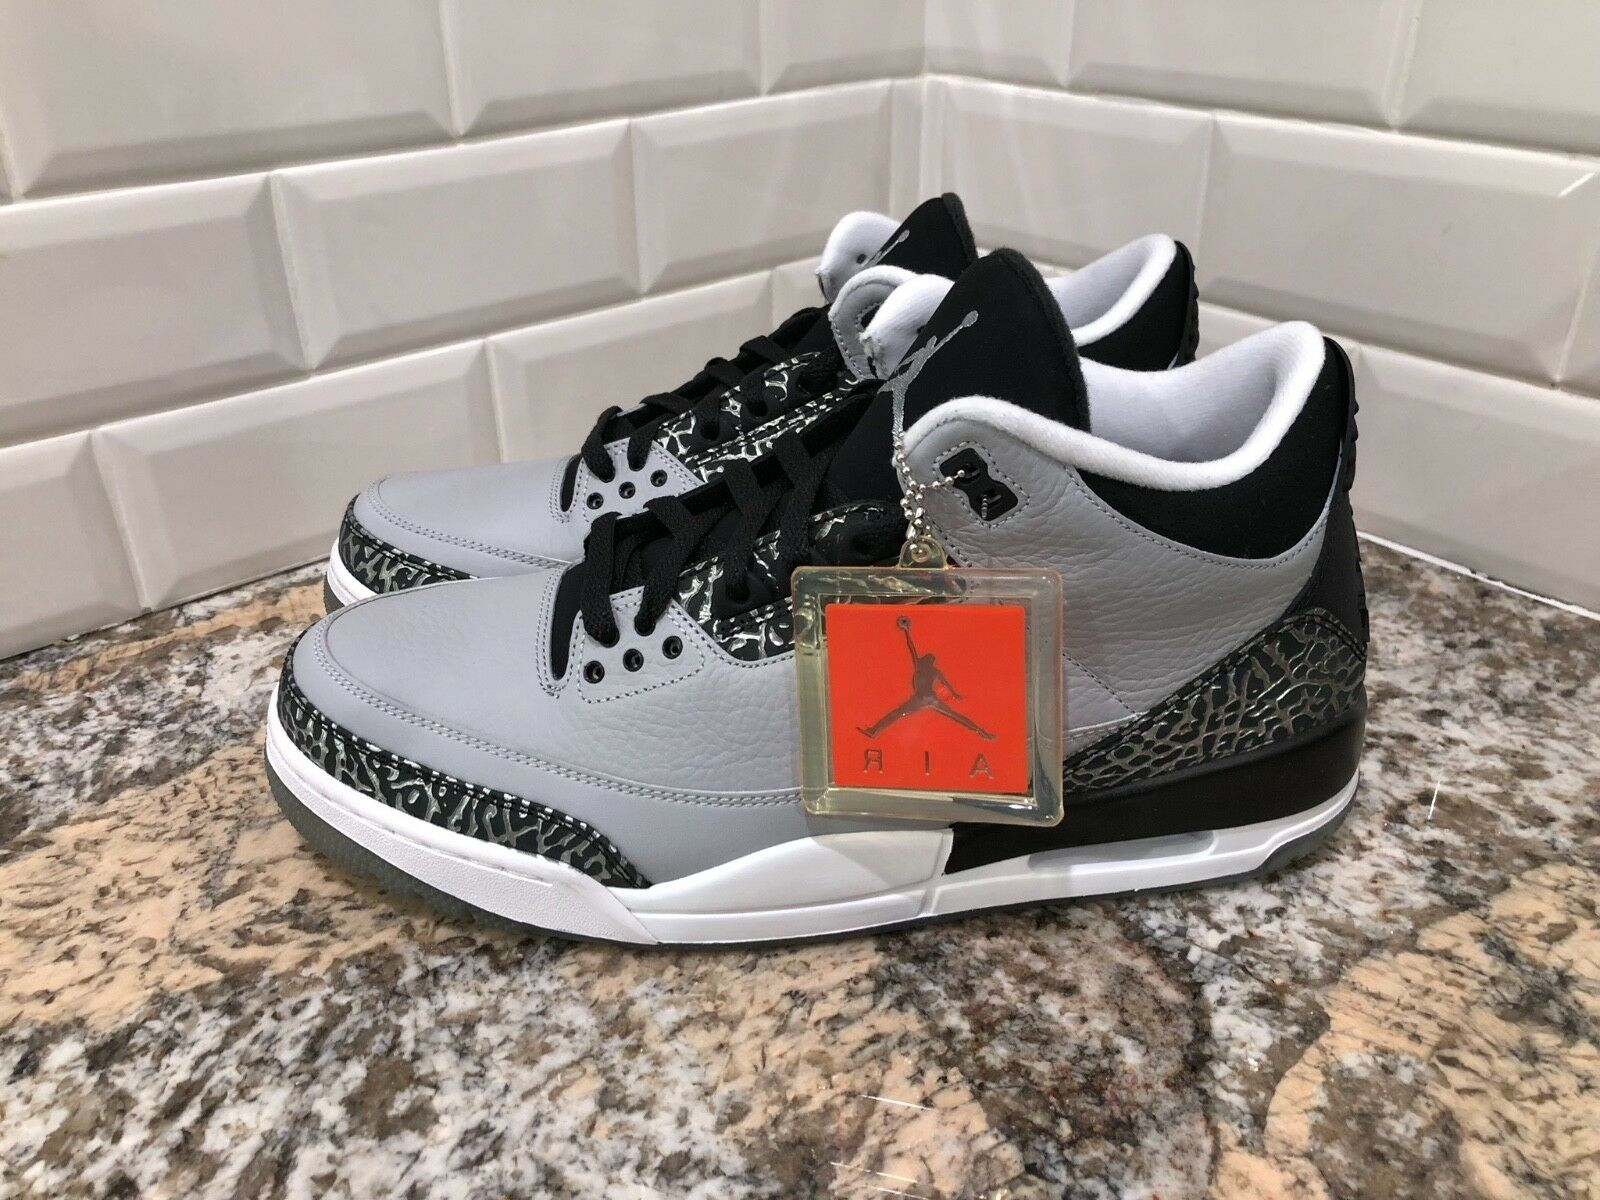 newest fcbaa c38c0 Nike Nike Nike Air Jordan 3 Retro Wolf Grey Metallic Silver Black SZ 12  136064-